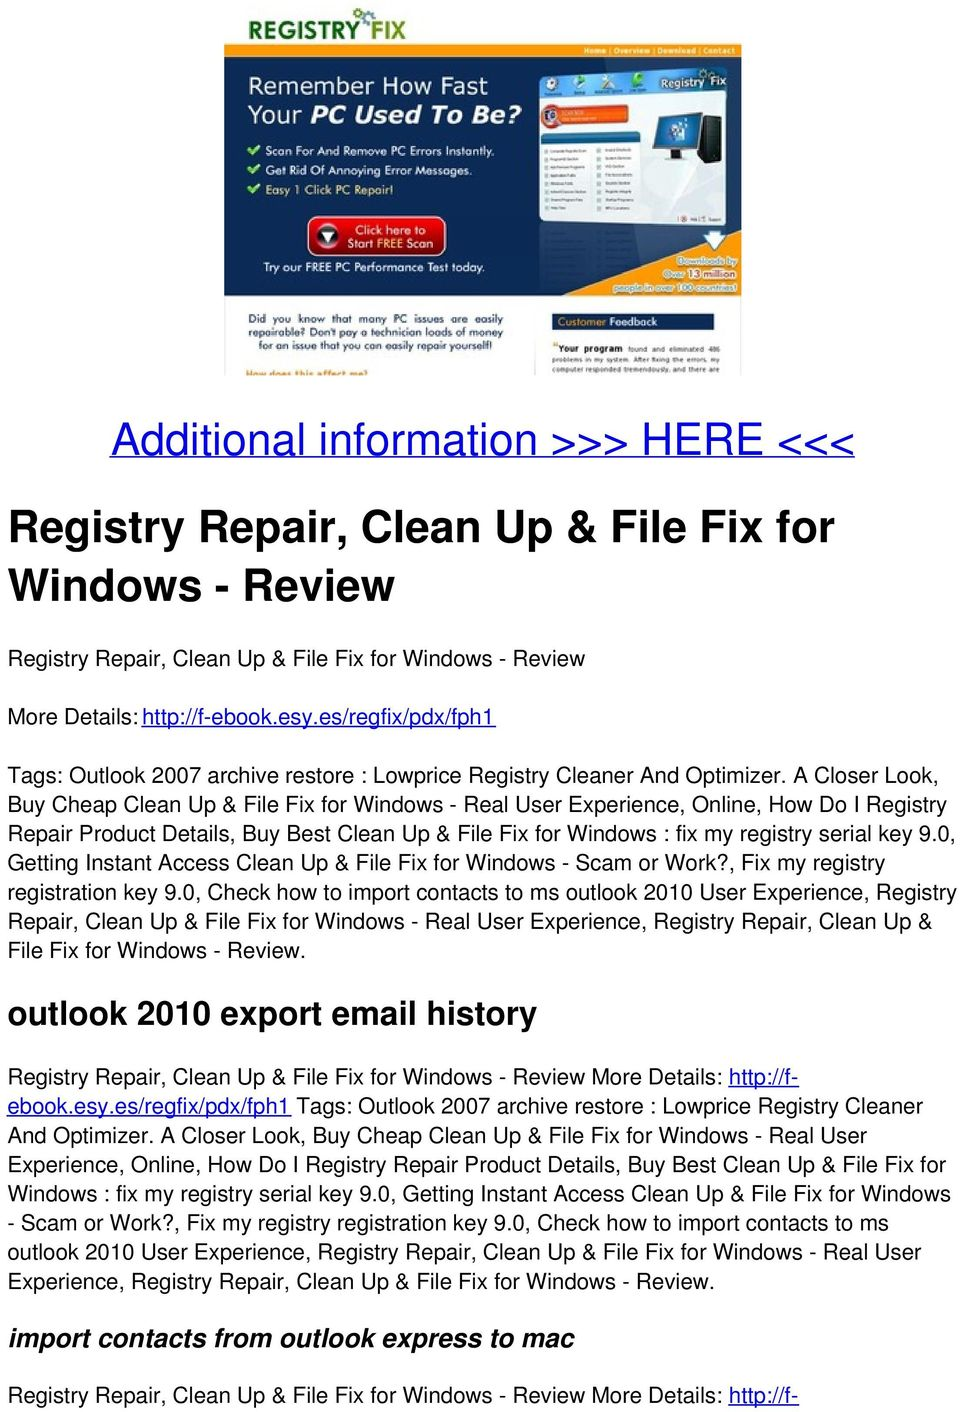 A Closer Look, Buy Cheap Clean Up & File Fix for Windows - Real User Experience, Online, How Do I Registry Repair Product Details, Buy Best Clean Up & File Fix for Windows : fix my registry serial